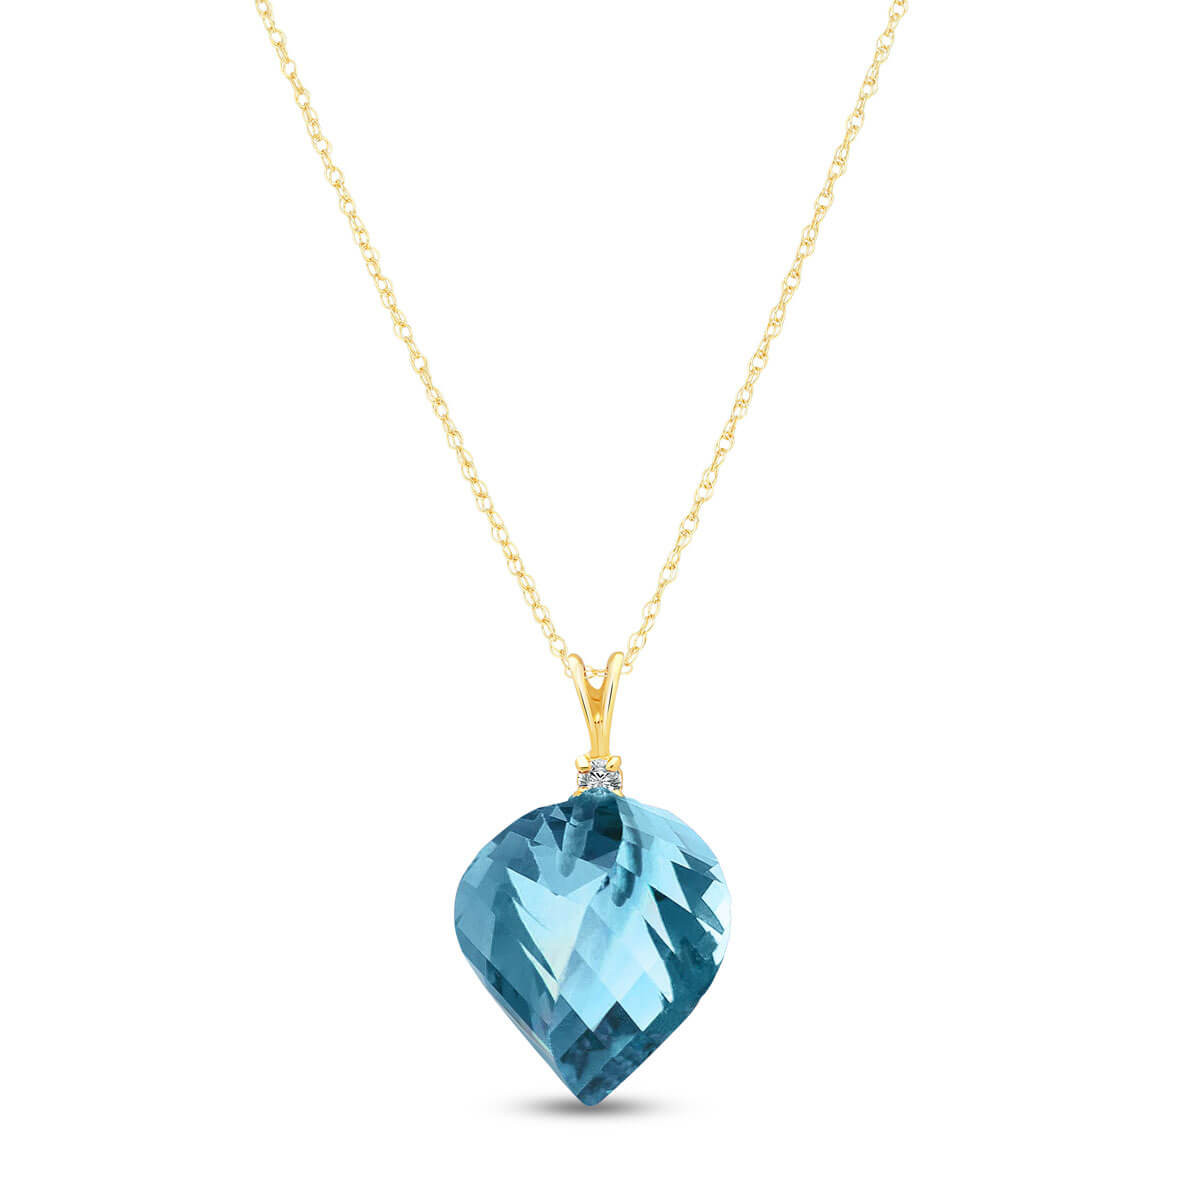 Twisted Briolette Cut Blue Topaz Pendant Necklace 13.95 ctw in 9ct Gold